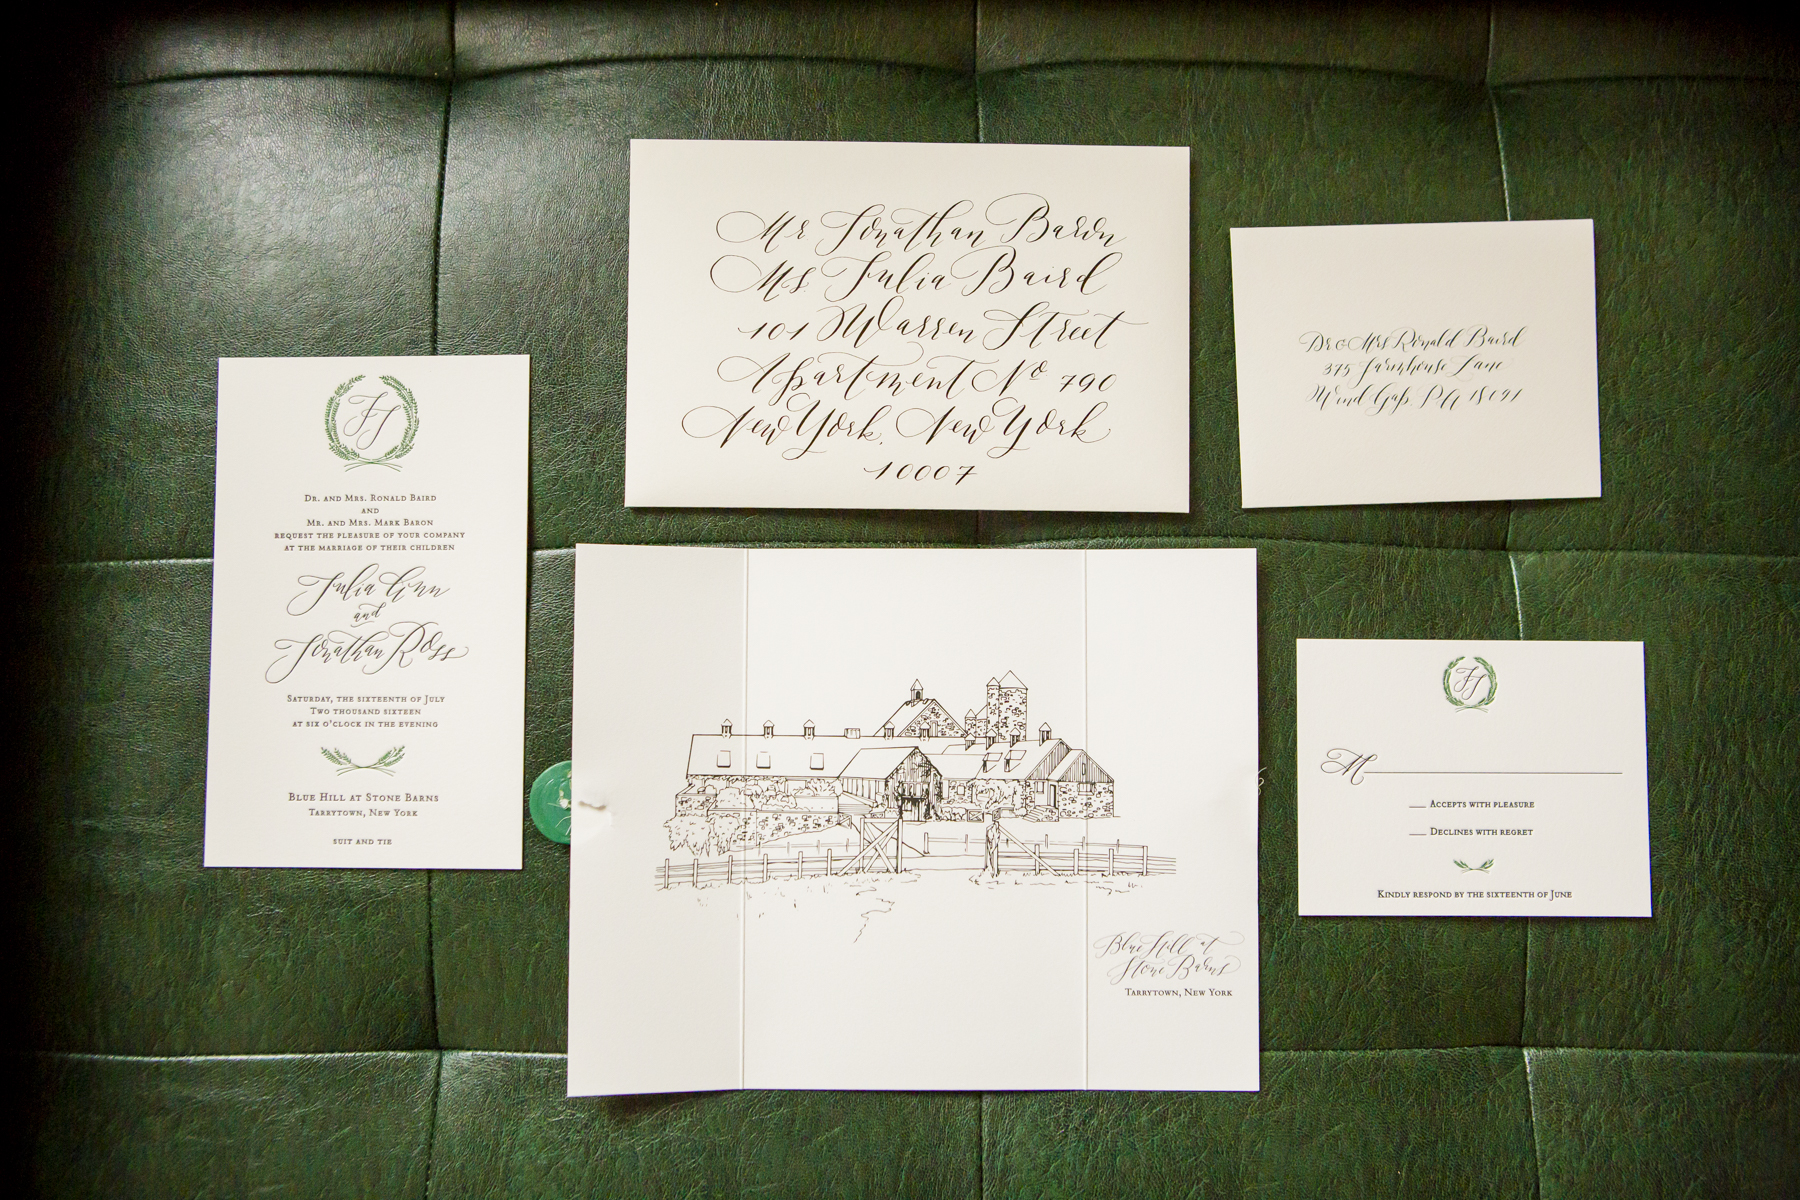 - Katie Fischer, who designed our invitations, did a really great job at capturing the feeling we were looking for.  Her invites set the mood long before the day itself. She also created a logo that we carried throughout all of our designs (napkins, matches, etc.).